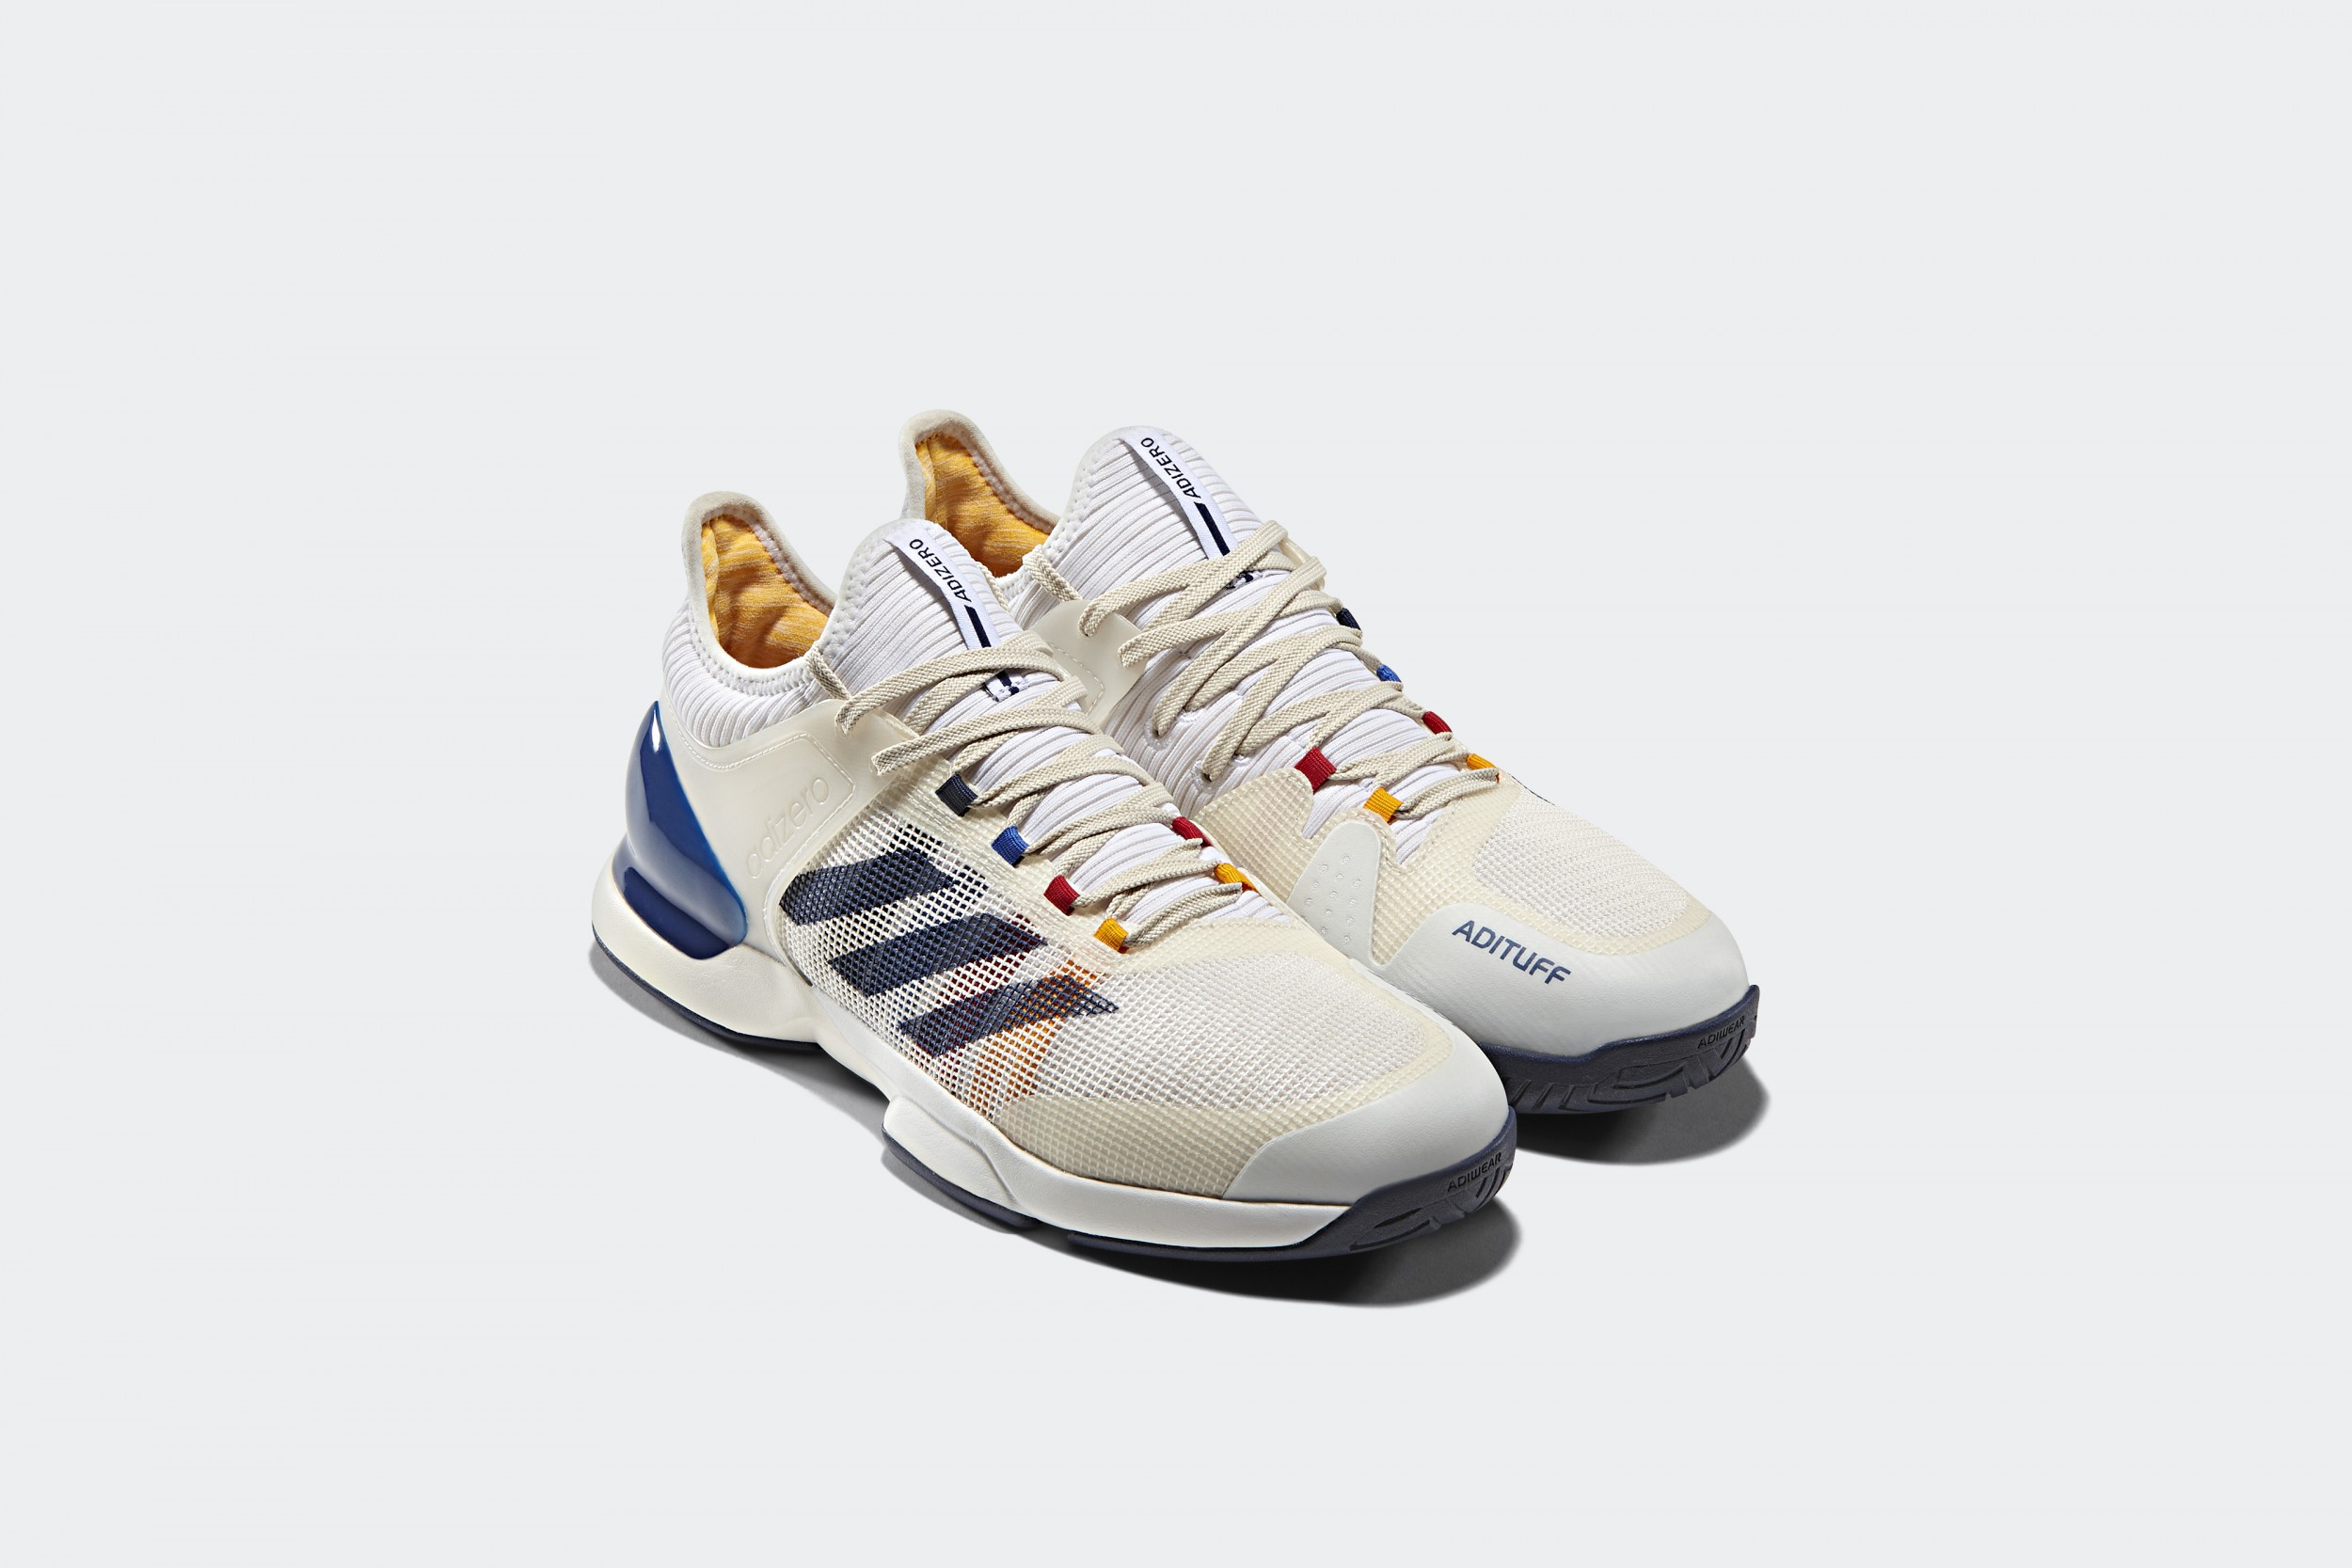 adidas_Tennis_Collection_by_PHARRELL_WILLIAMS_CG3086_PAIR